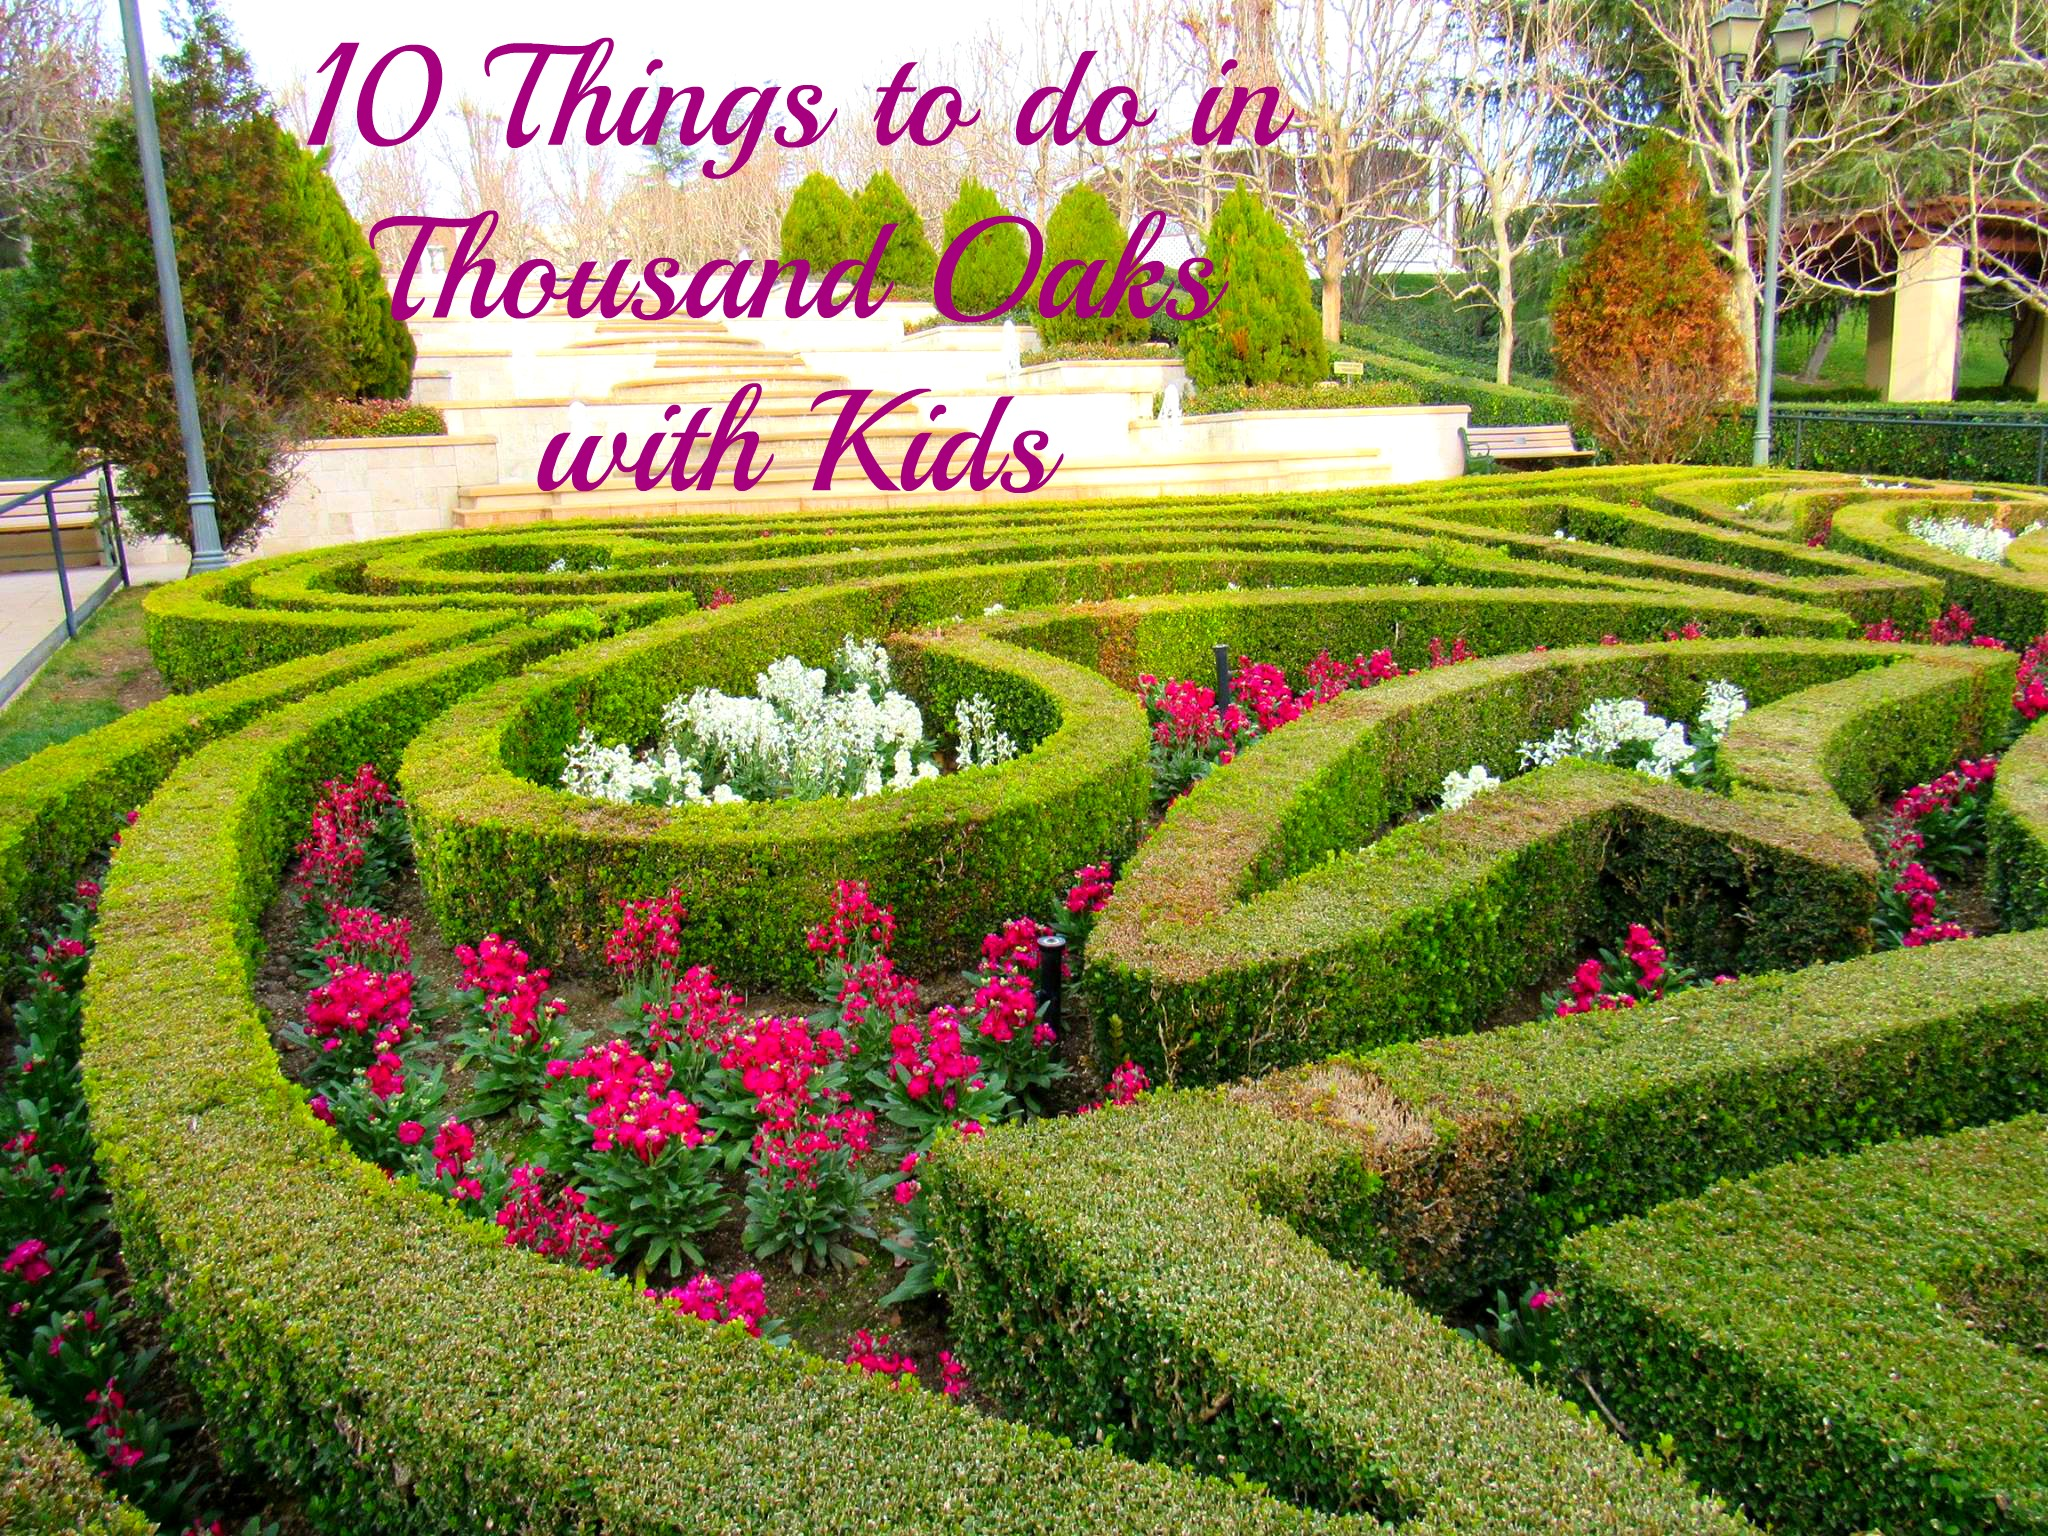 10 Things to do in Thousand Oaks with Kids